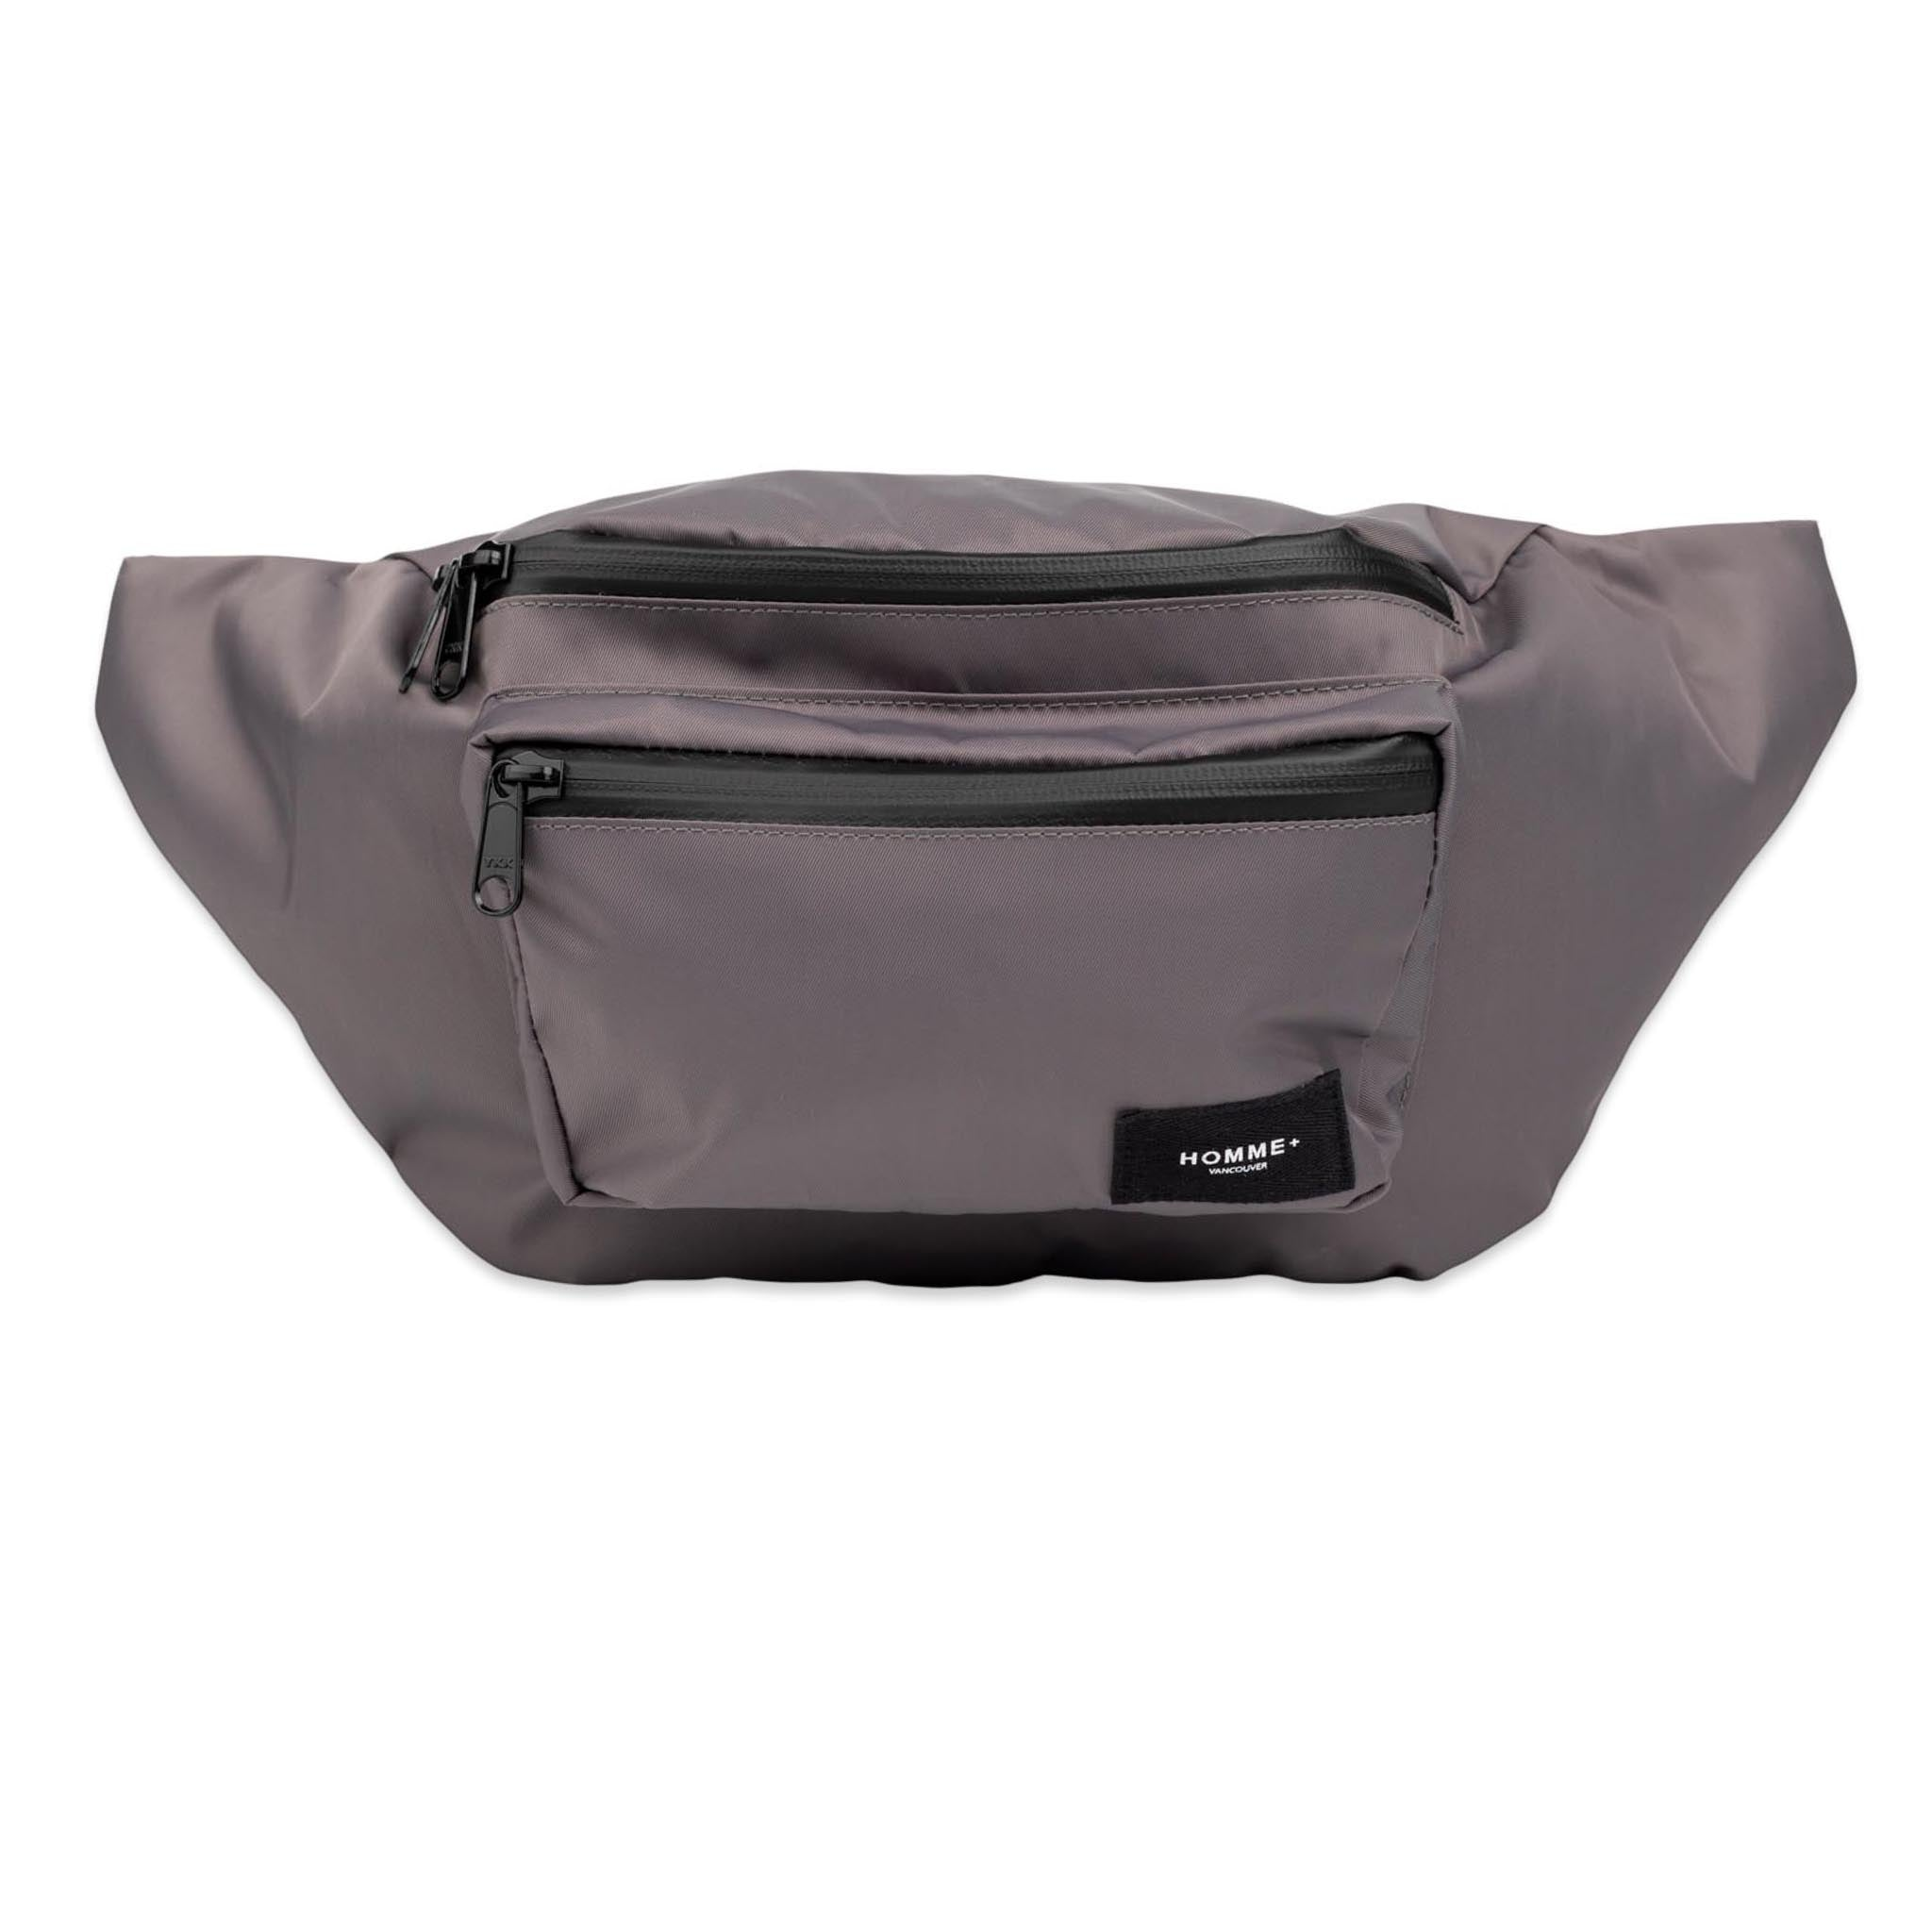 HOMME+ Large Nylon Waist Pack Charcoal